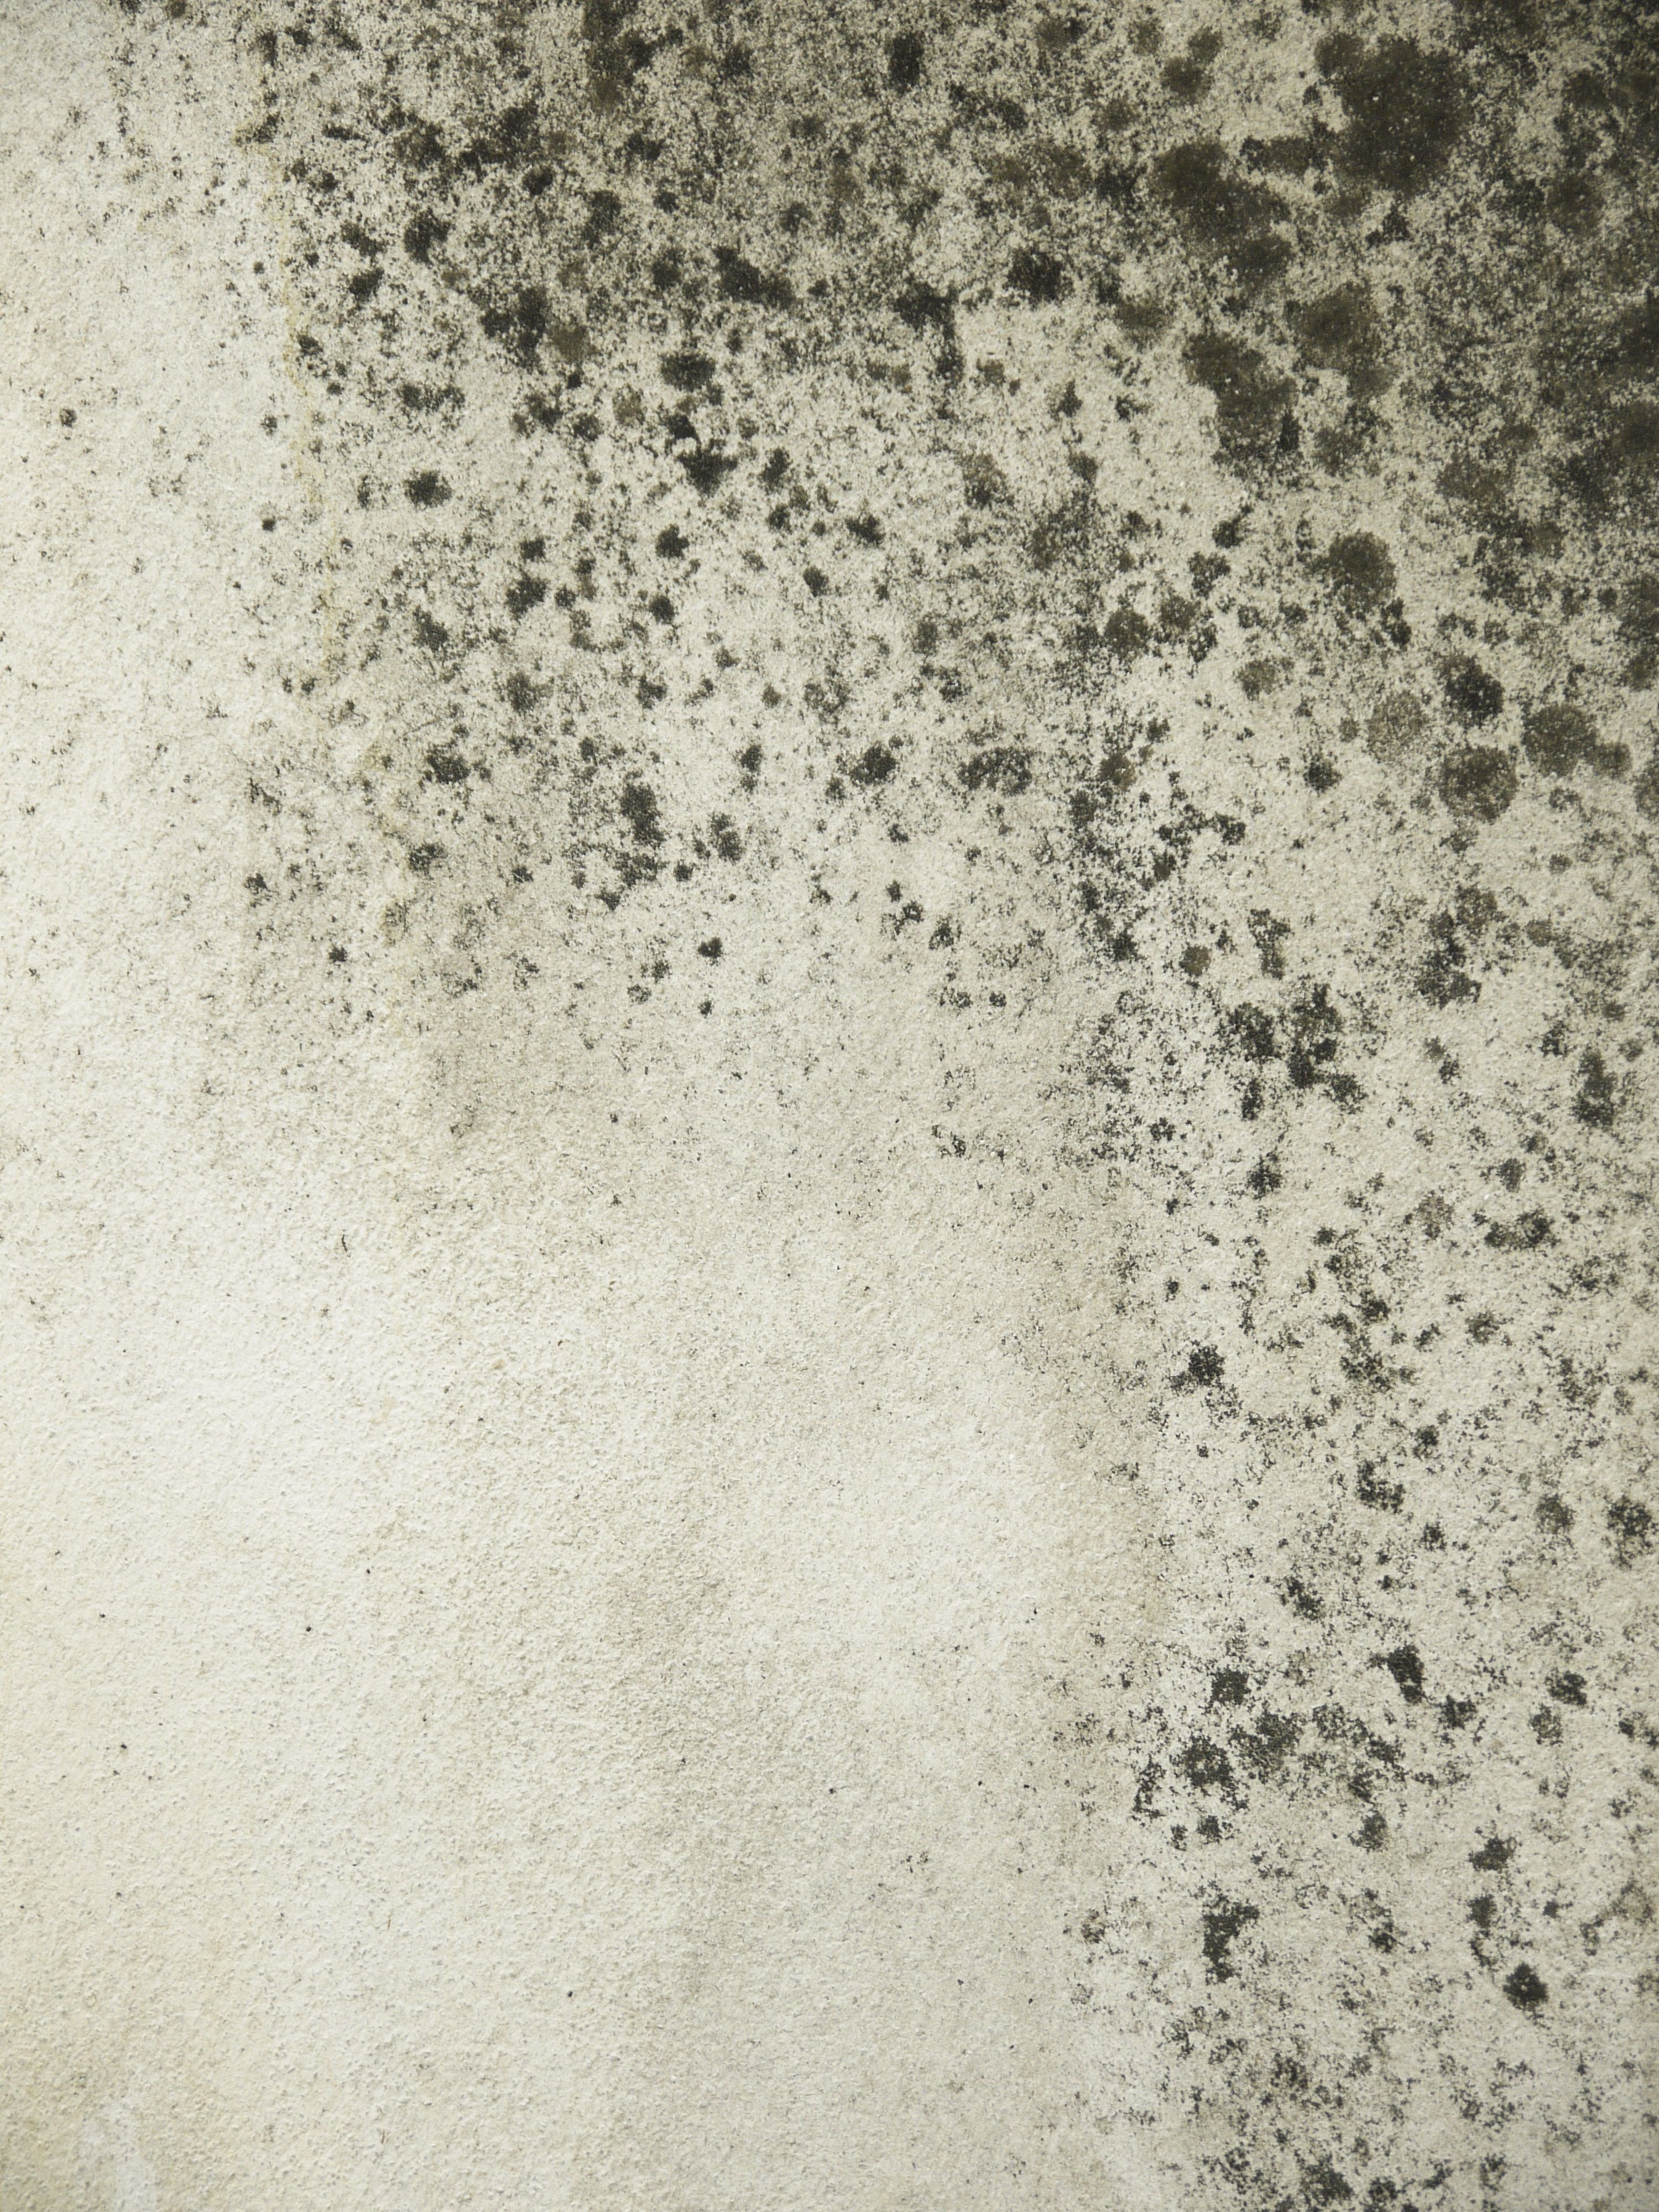 Mold Illness What It Is And How You Know If Have